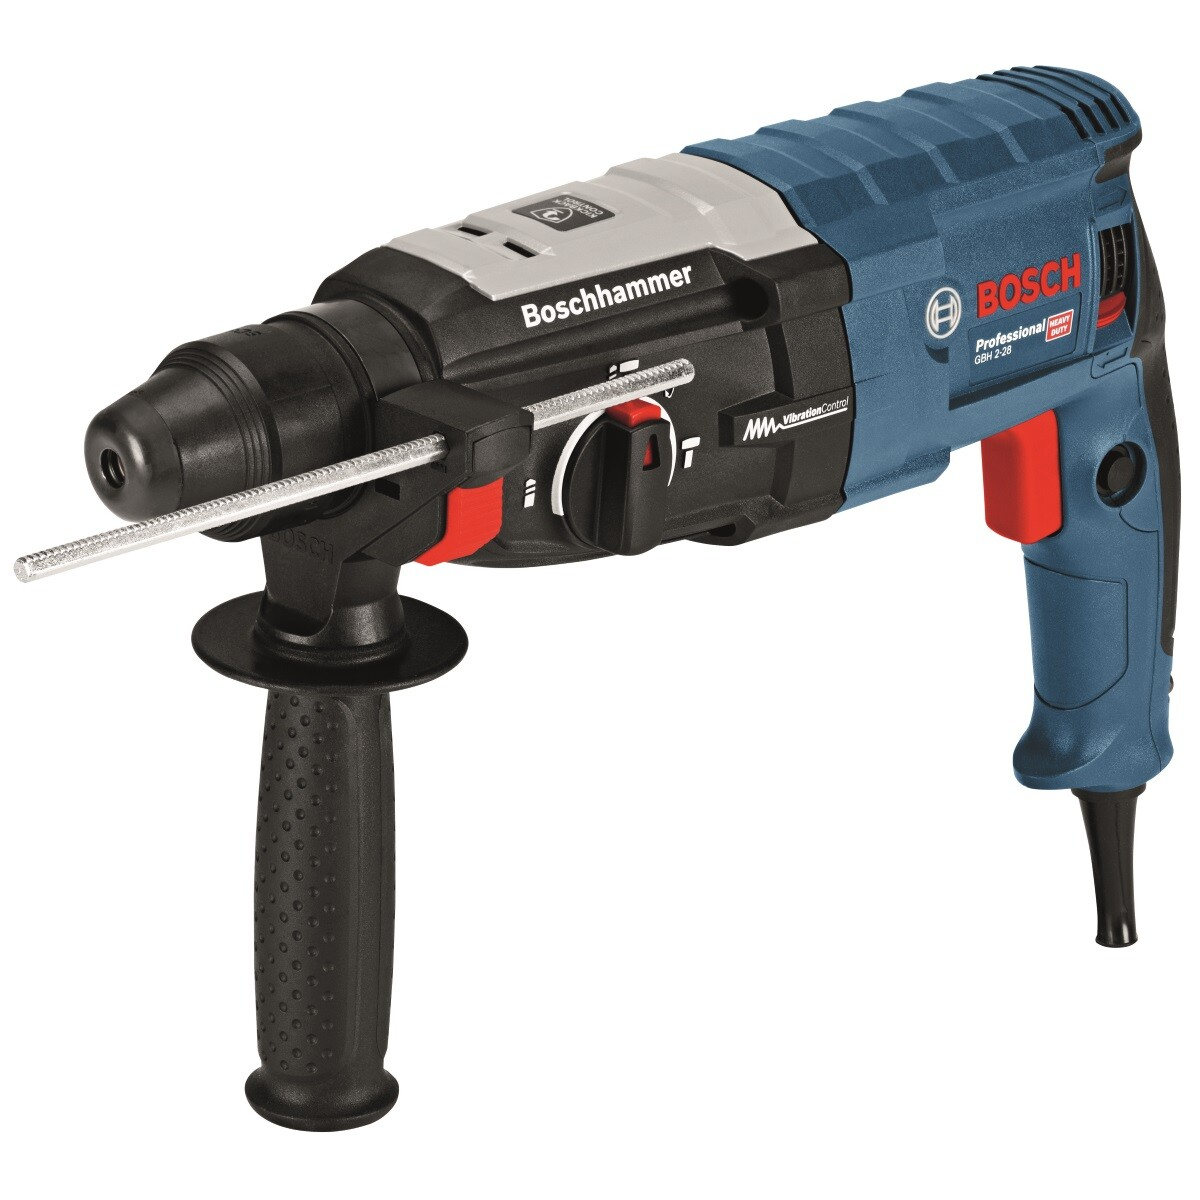 Bosch GBH 2-28 2 kg 3 Function SDS-plus Rotary Hammer with Vibration Control in L-BOXX